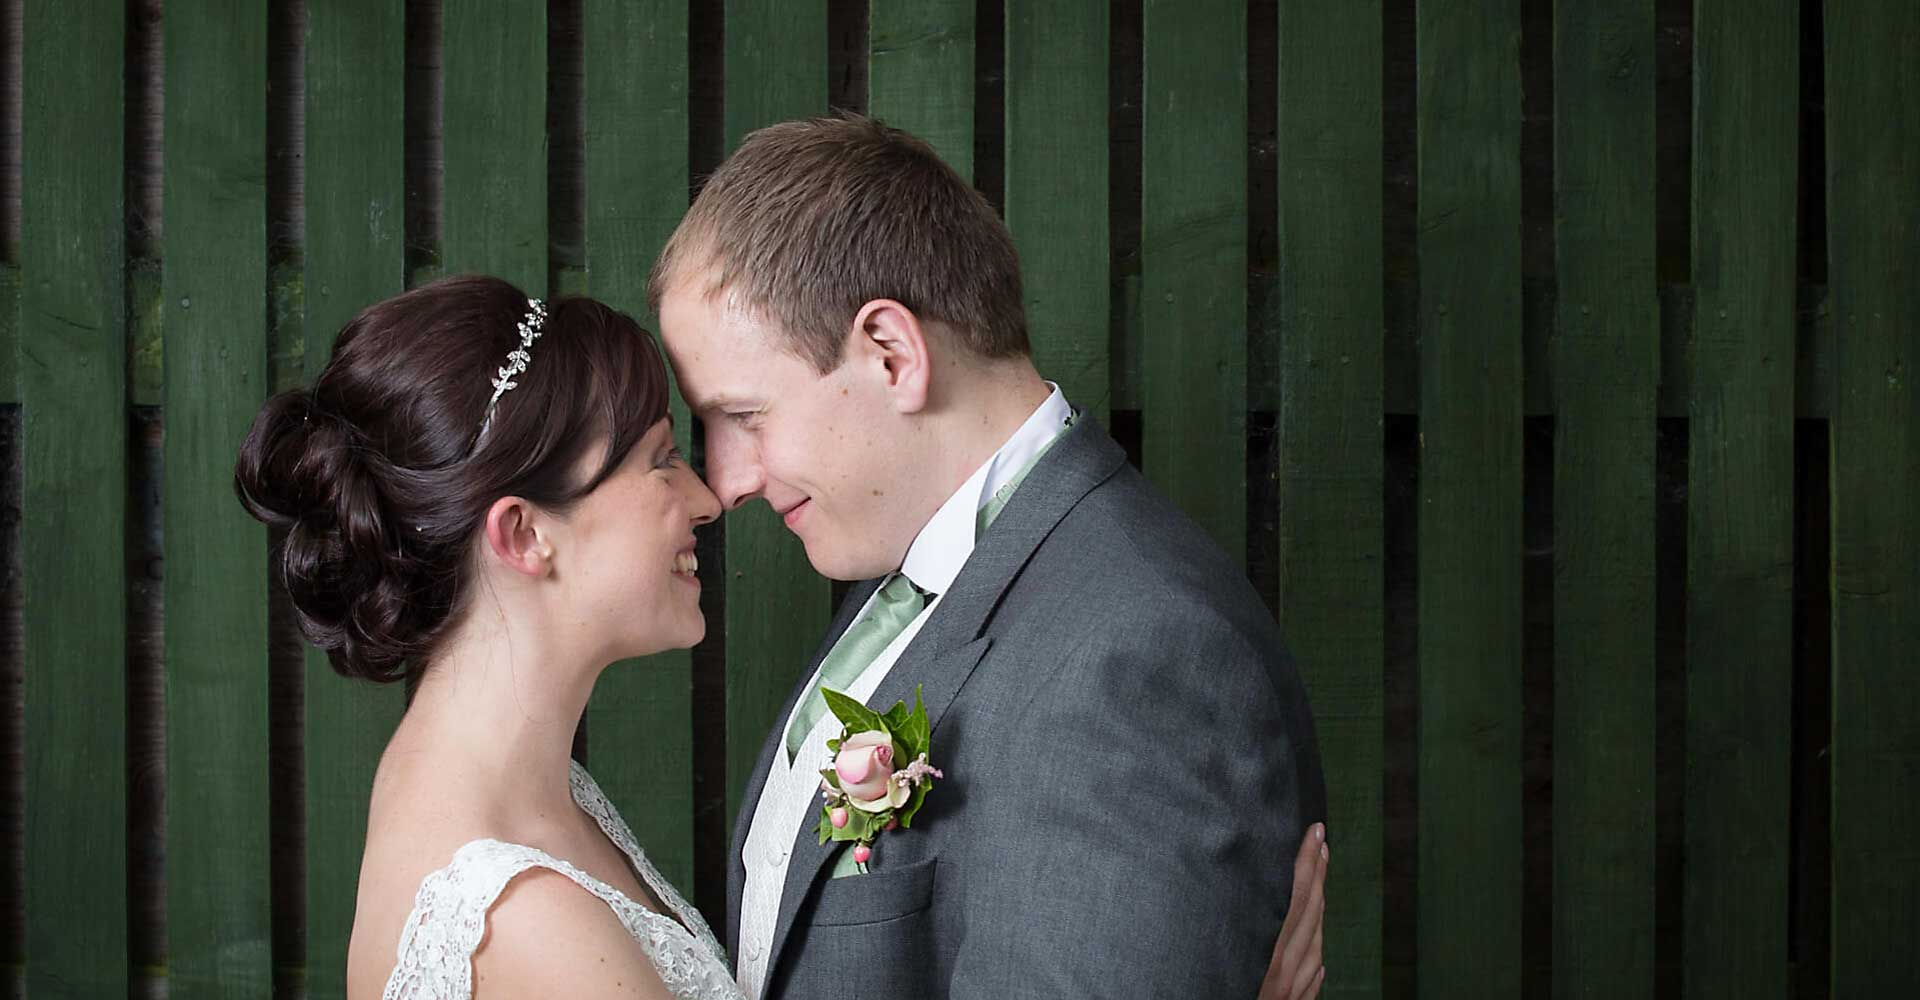 Bride and groom green background